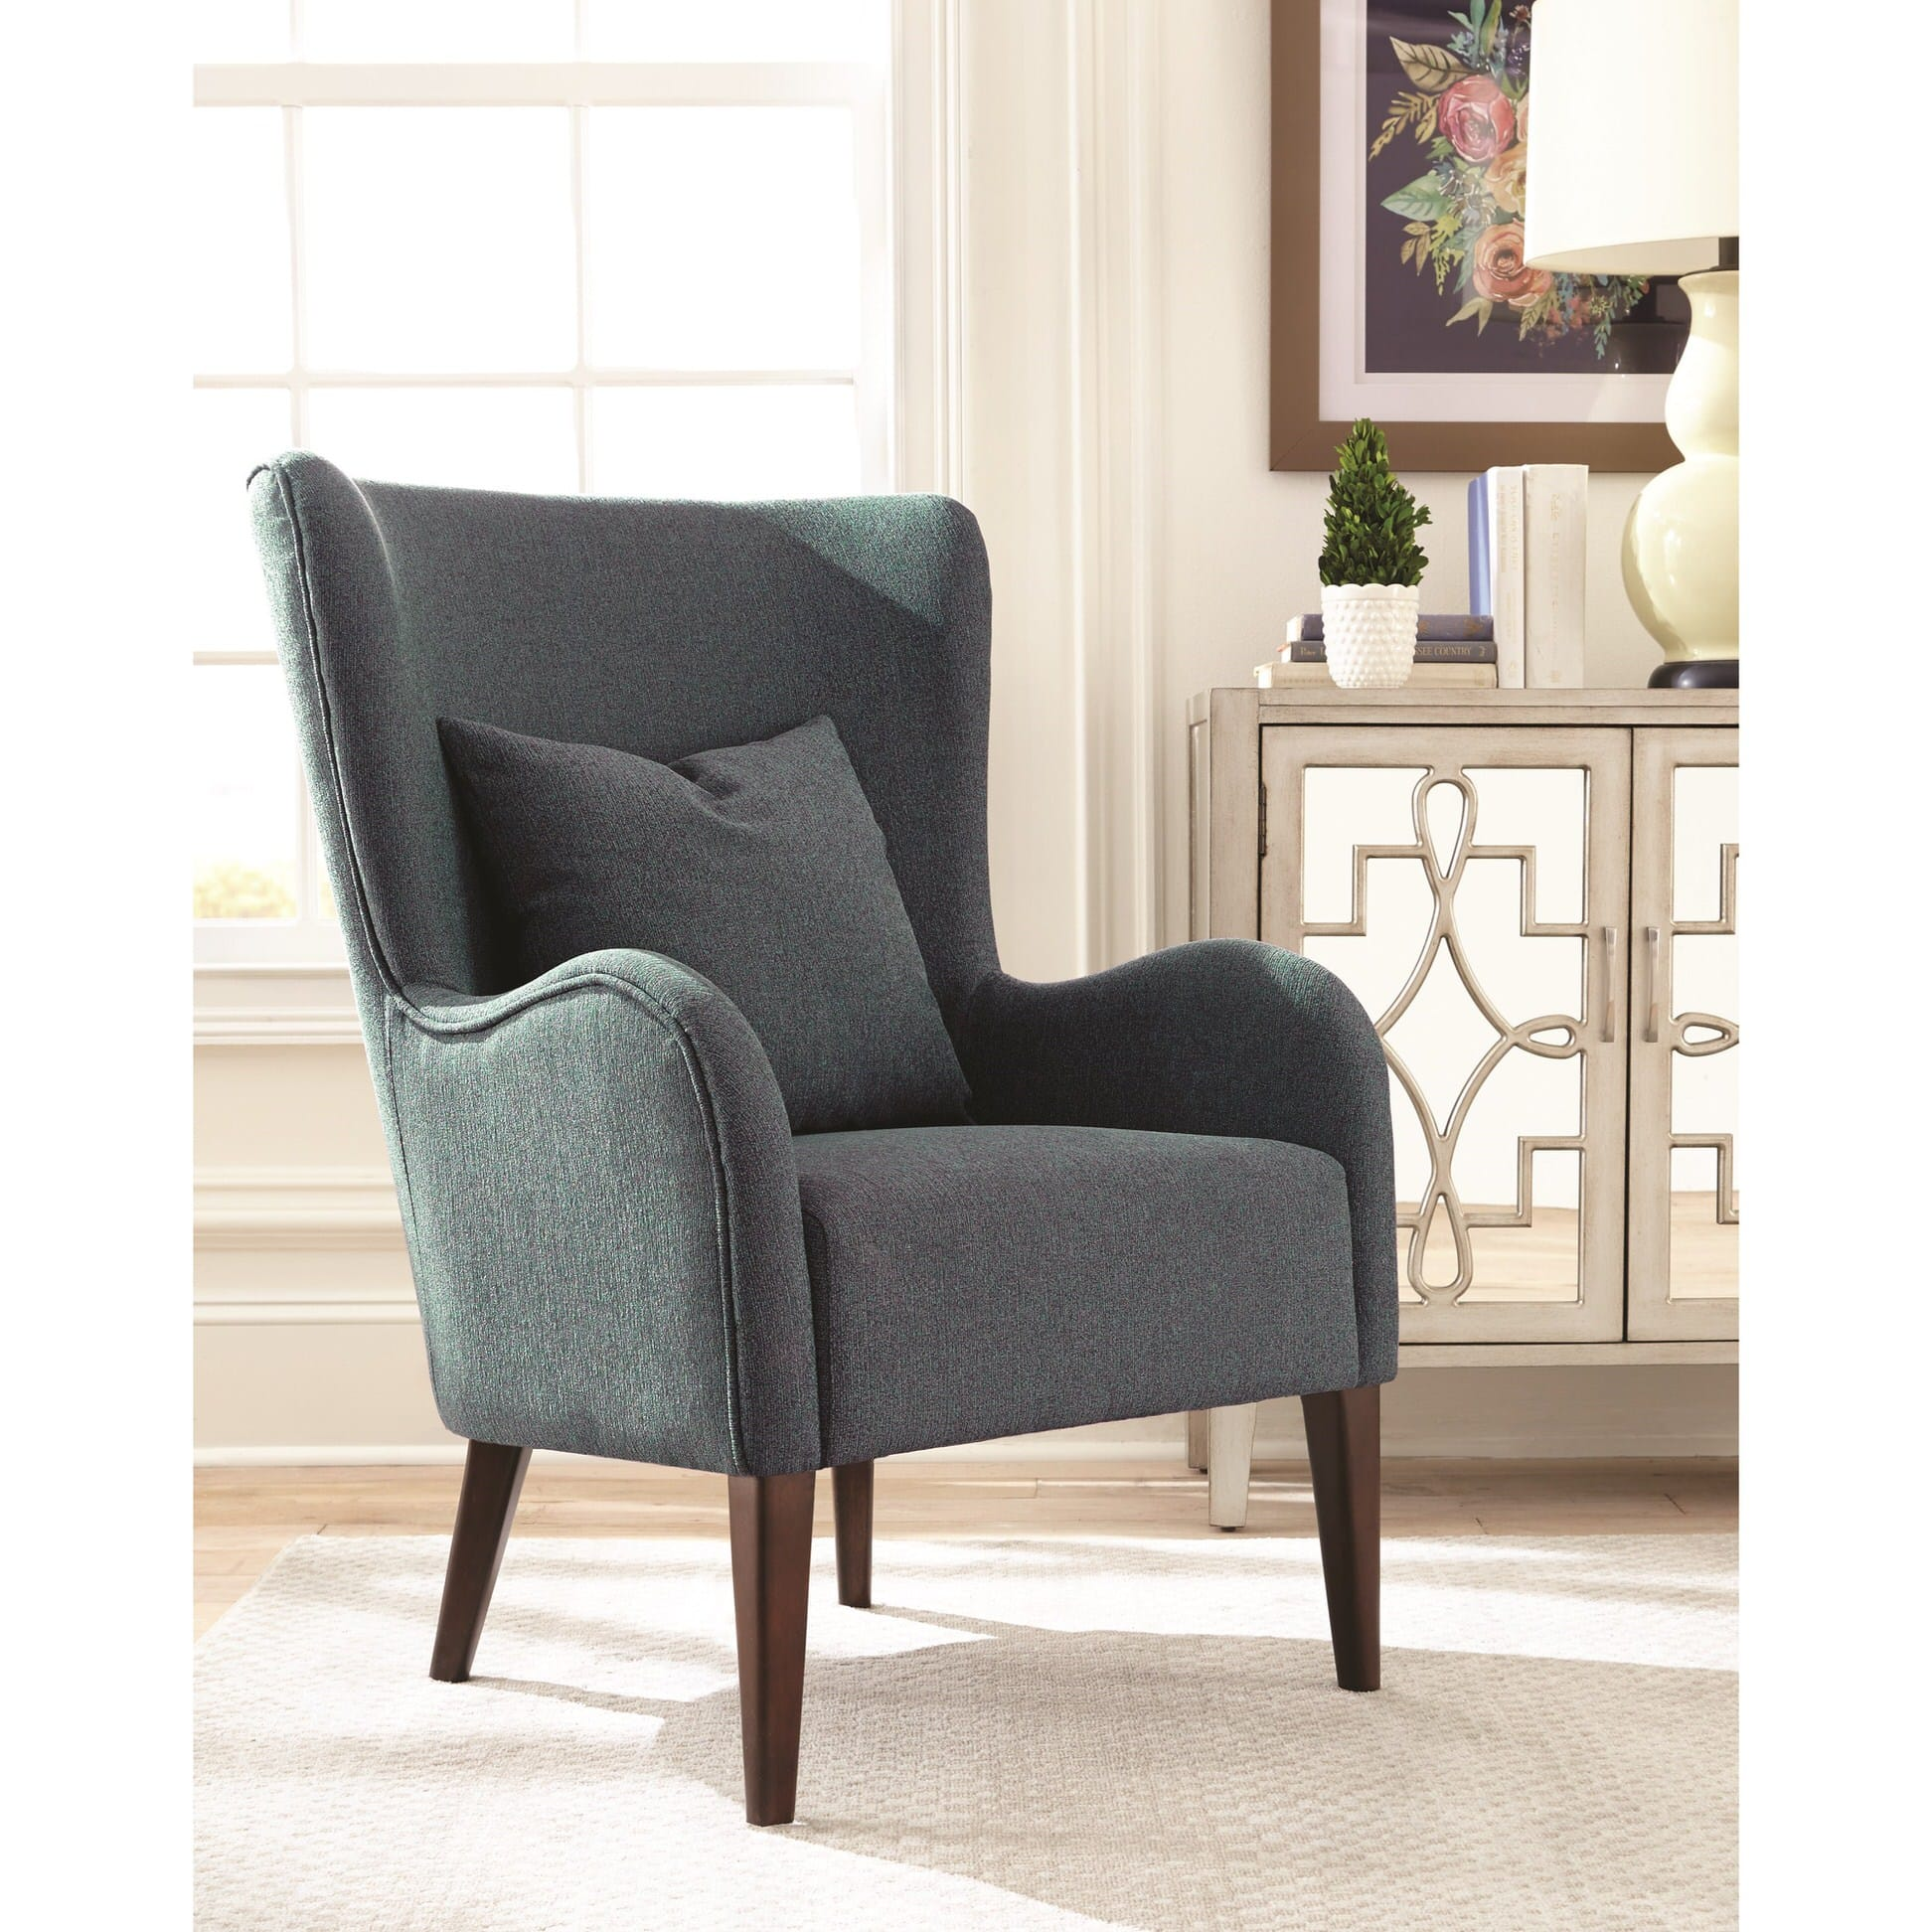 903370 Dark Teal Accent Chair By Scott Living